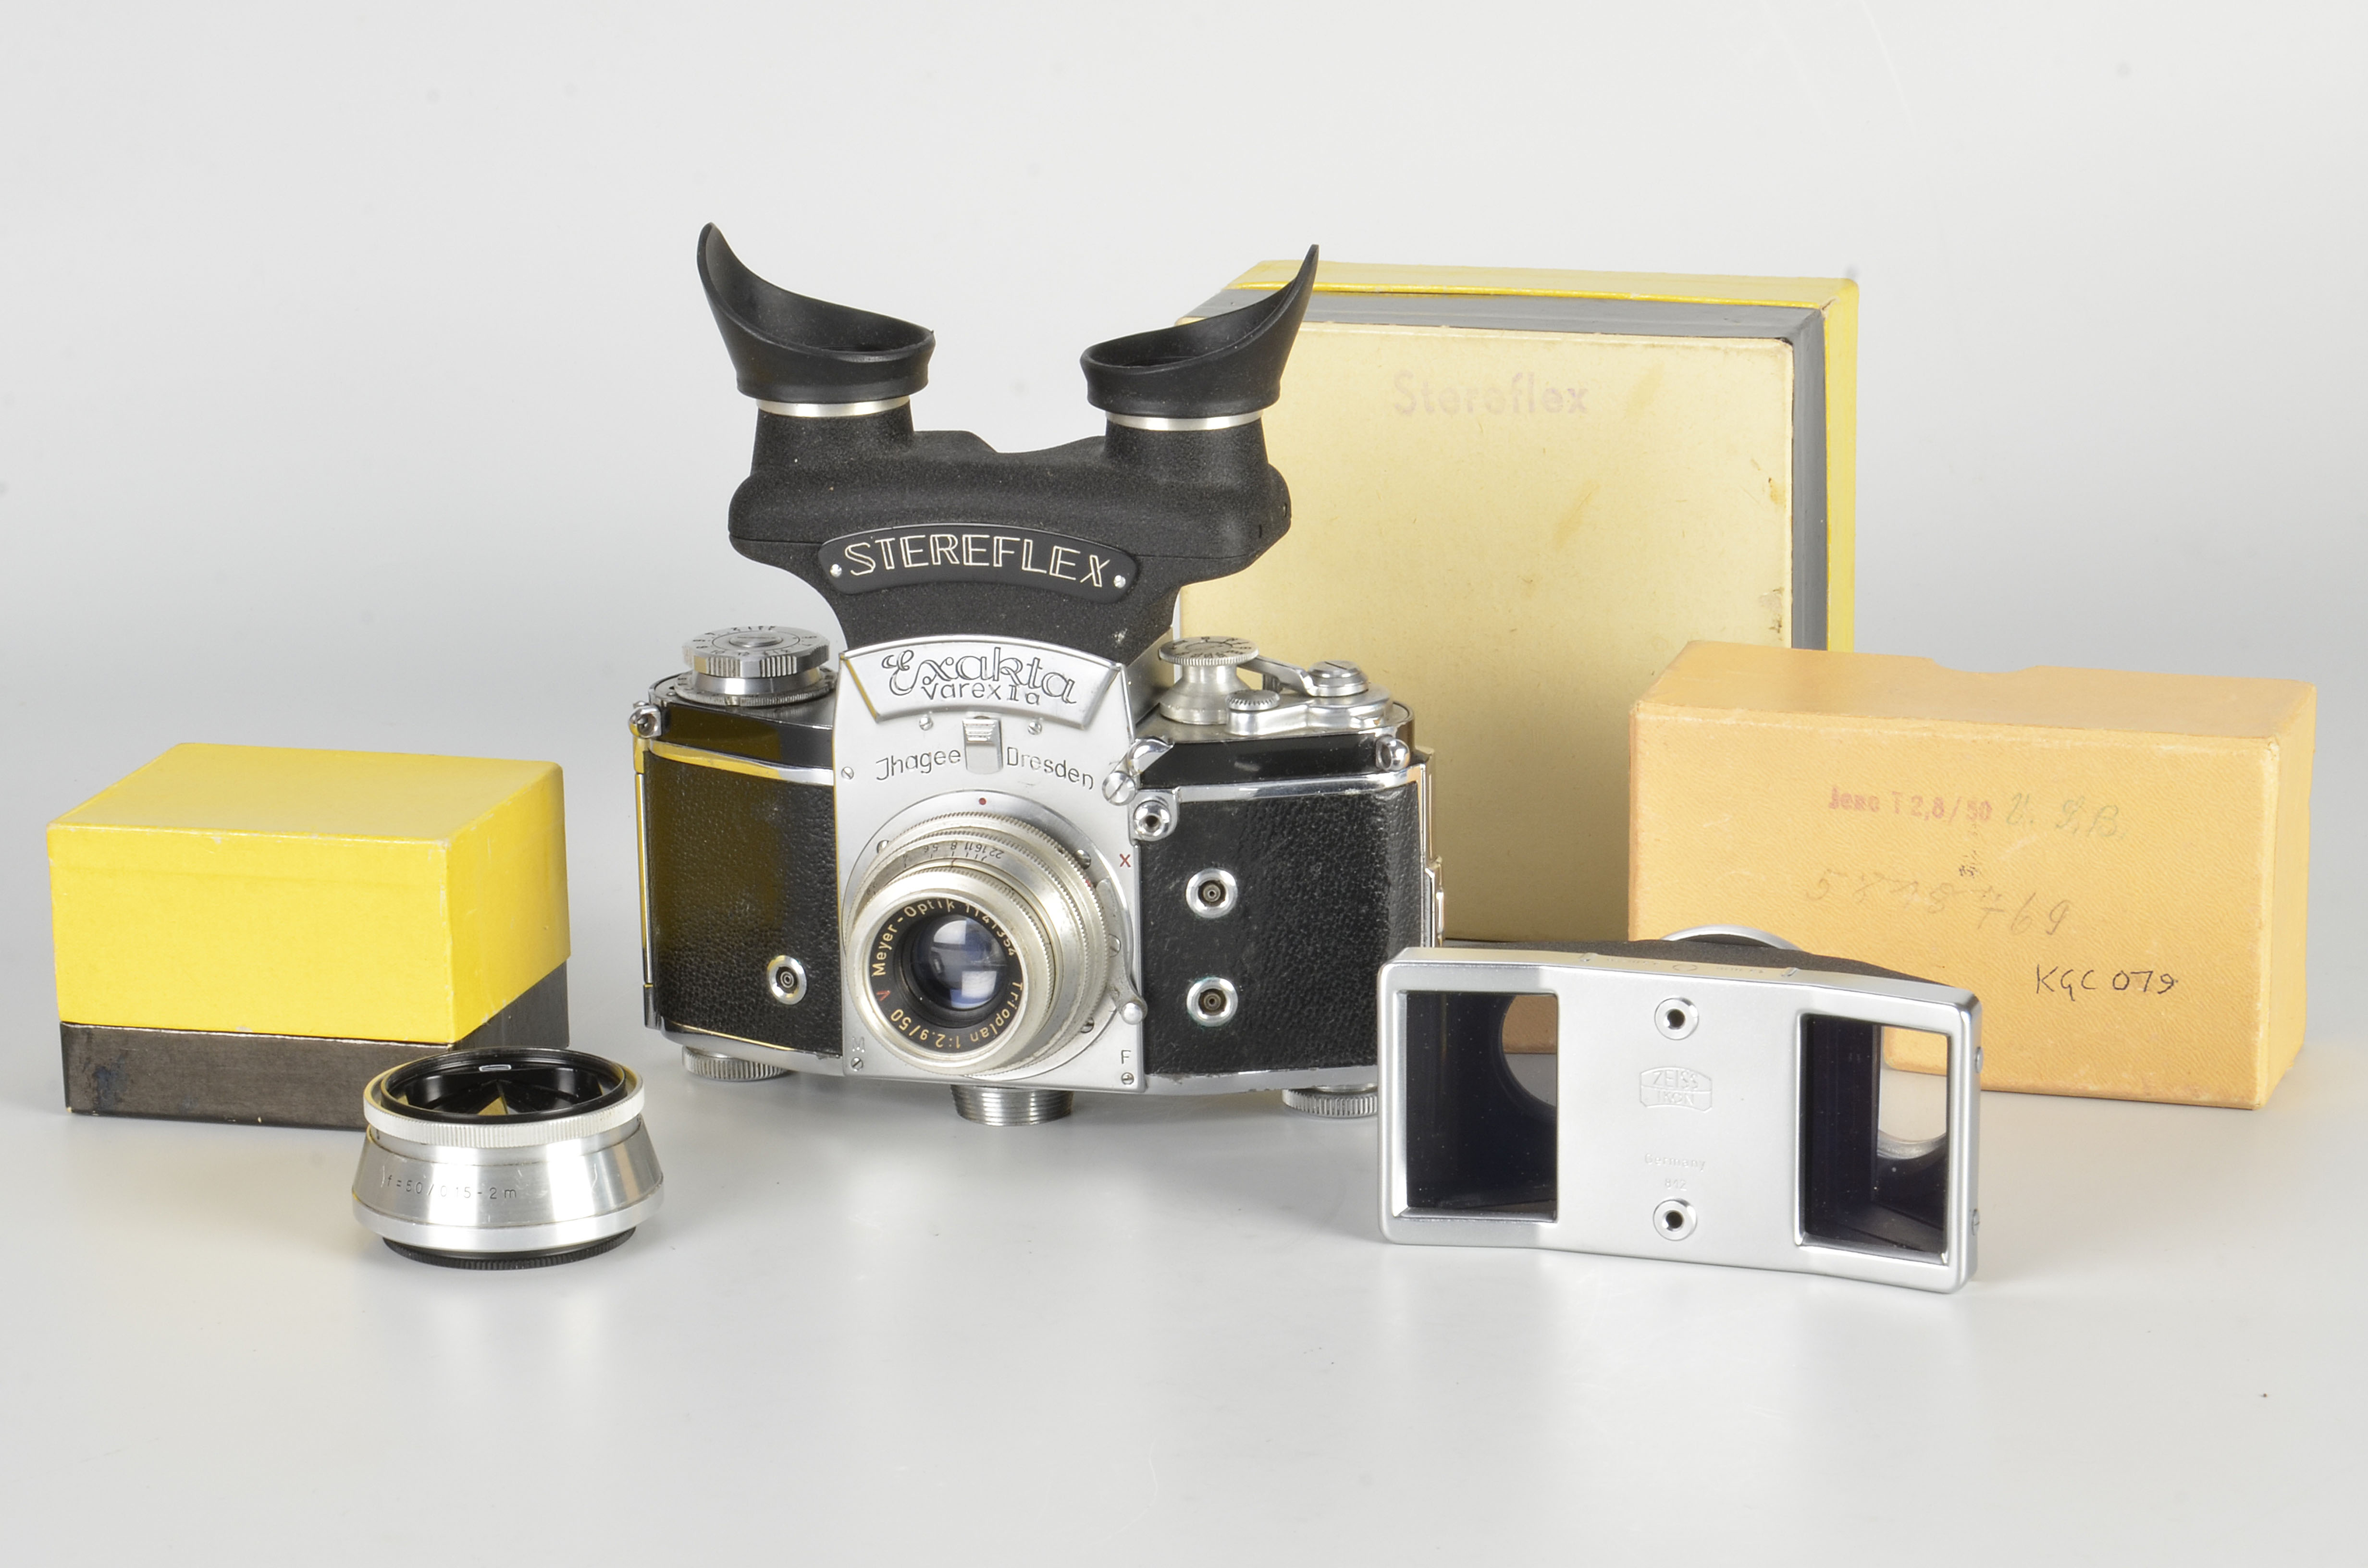 An Ihagee Exakta Varex VX Stereflex Camera, chrome, serial no. 820975, with Meyer-Optik Trioplan f/